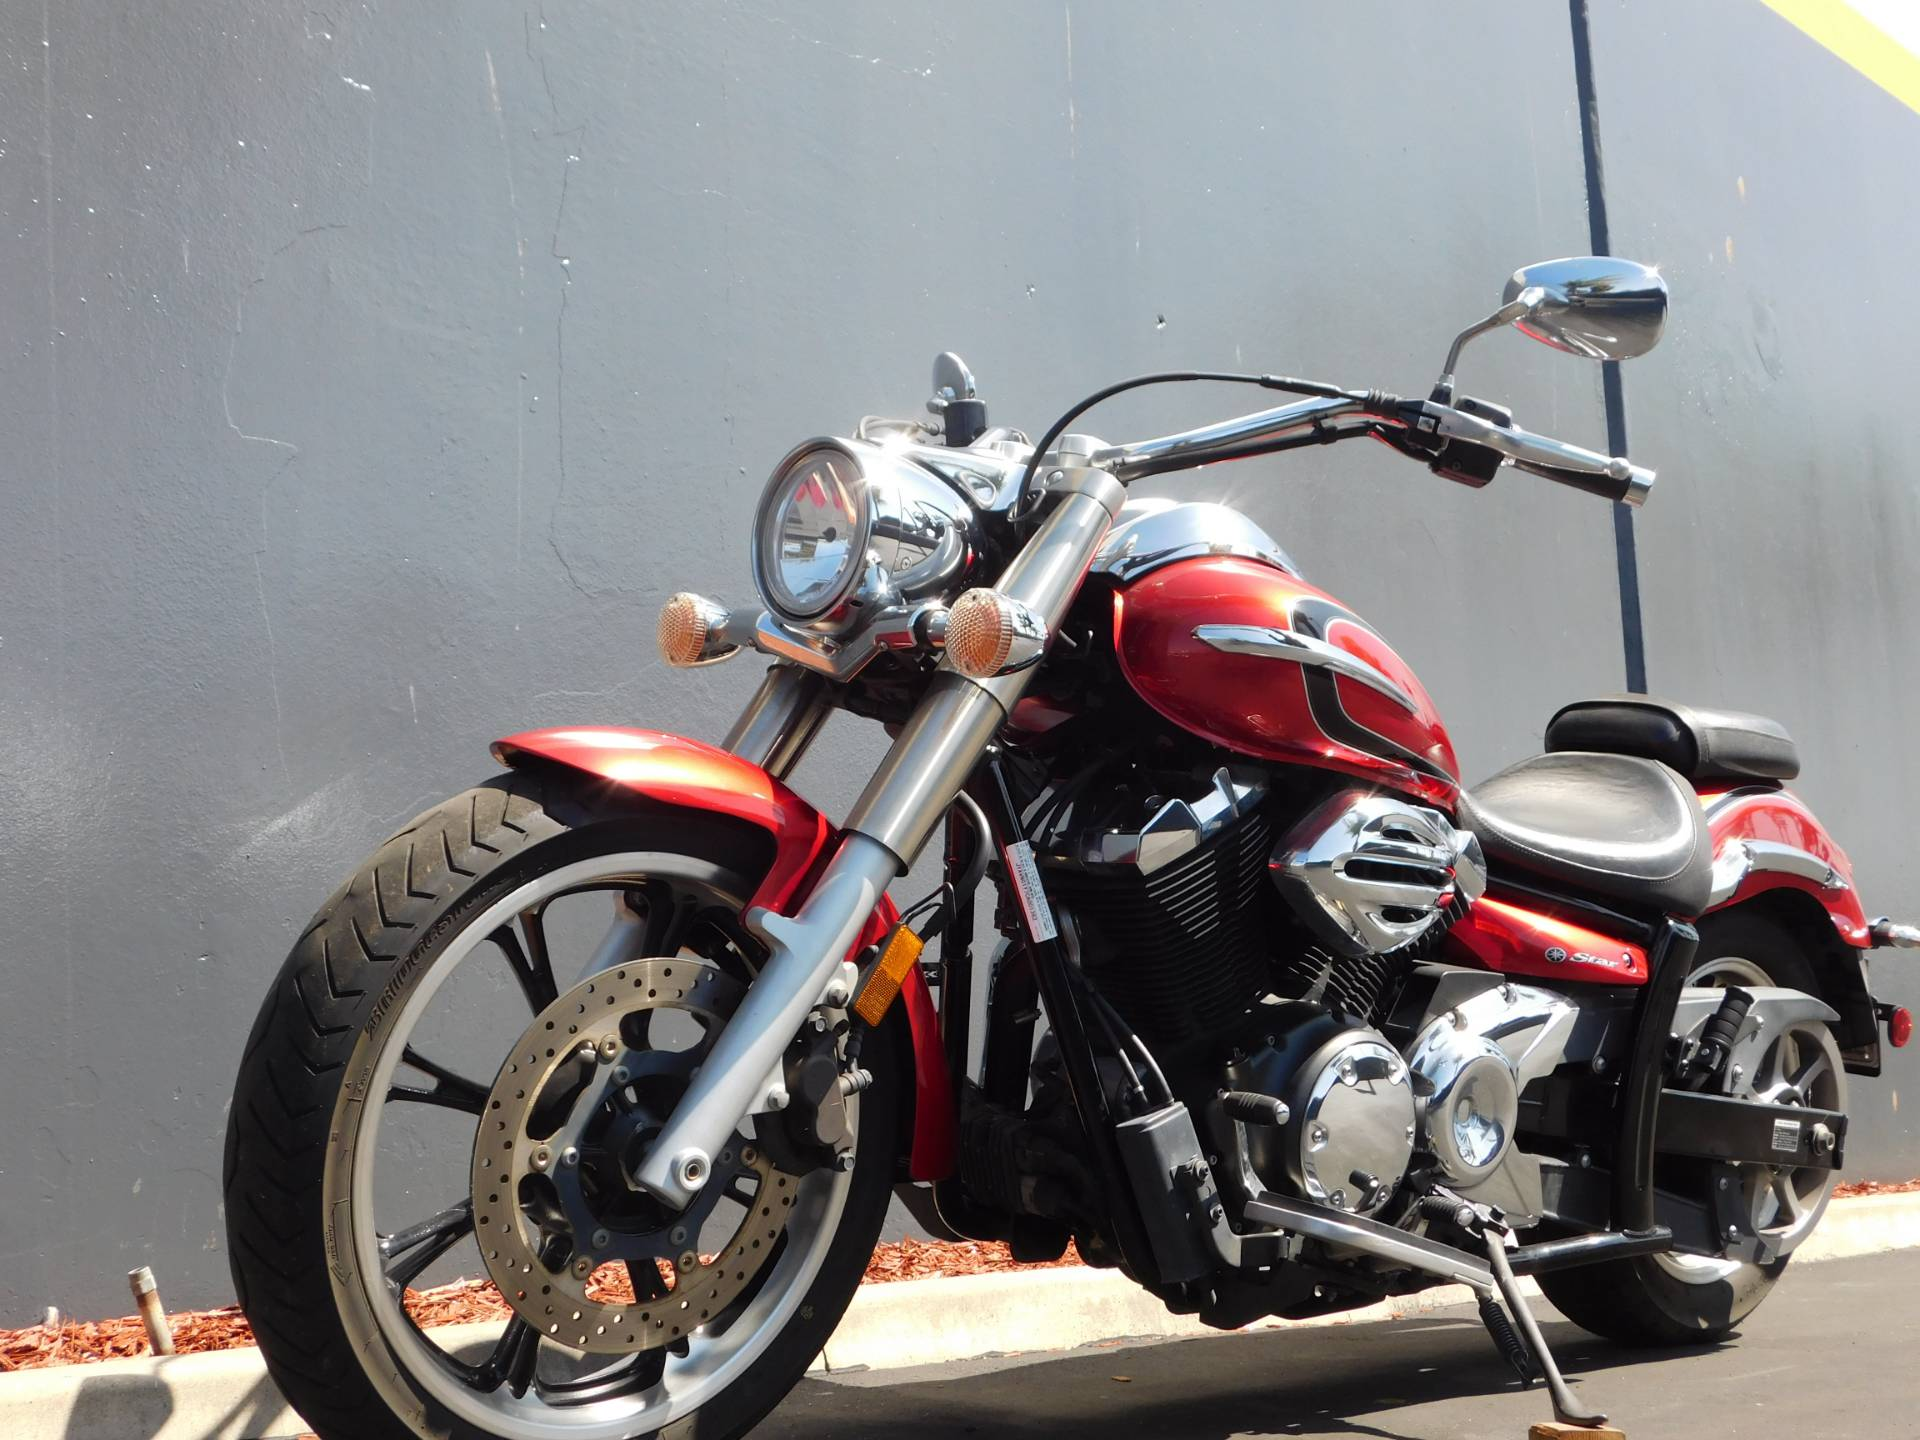 2012 Yamaha V Star 950 in Chula Vista, California - Photo 15